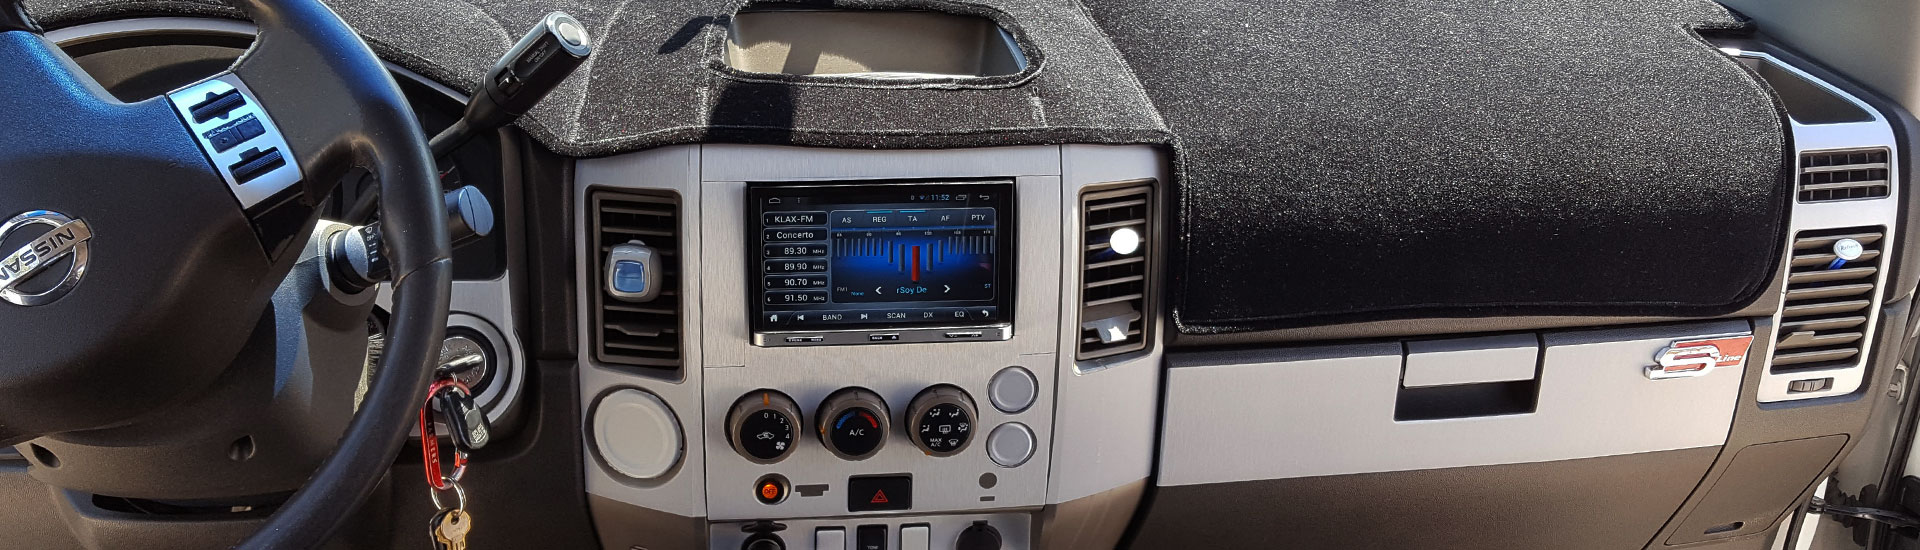 Nissan Armada Dash Kits Custom Nissan Armada Dash Kit